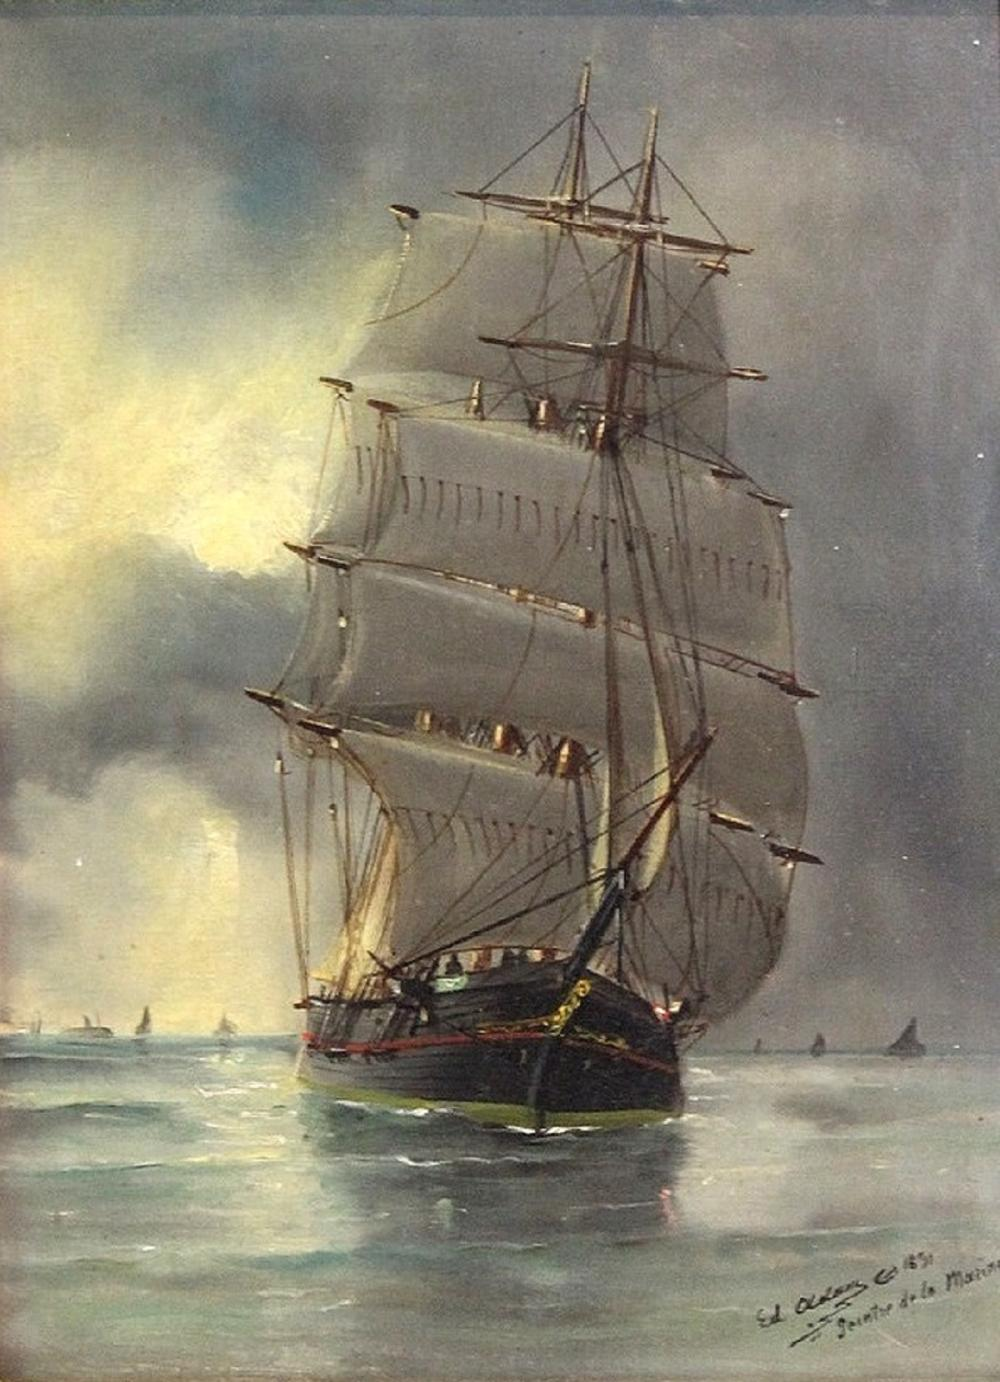 Marie-Edouard Adam of Le Havre (French, 1847-1929). Oil on Canvas of a of a three-masted Barque, dated 1891